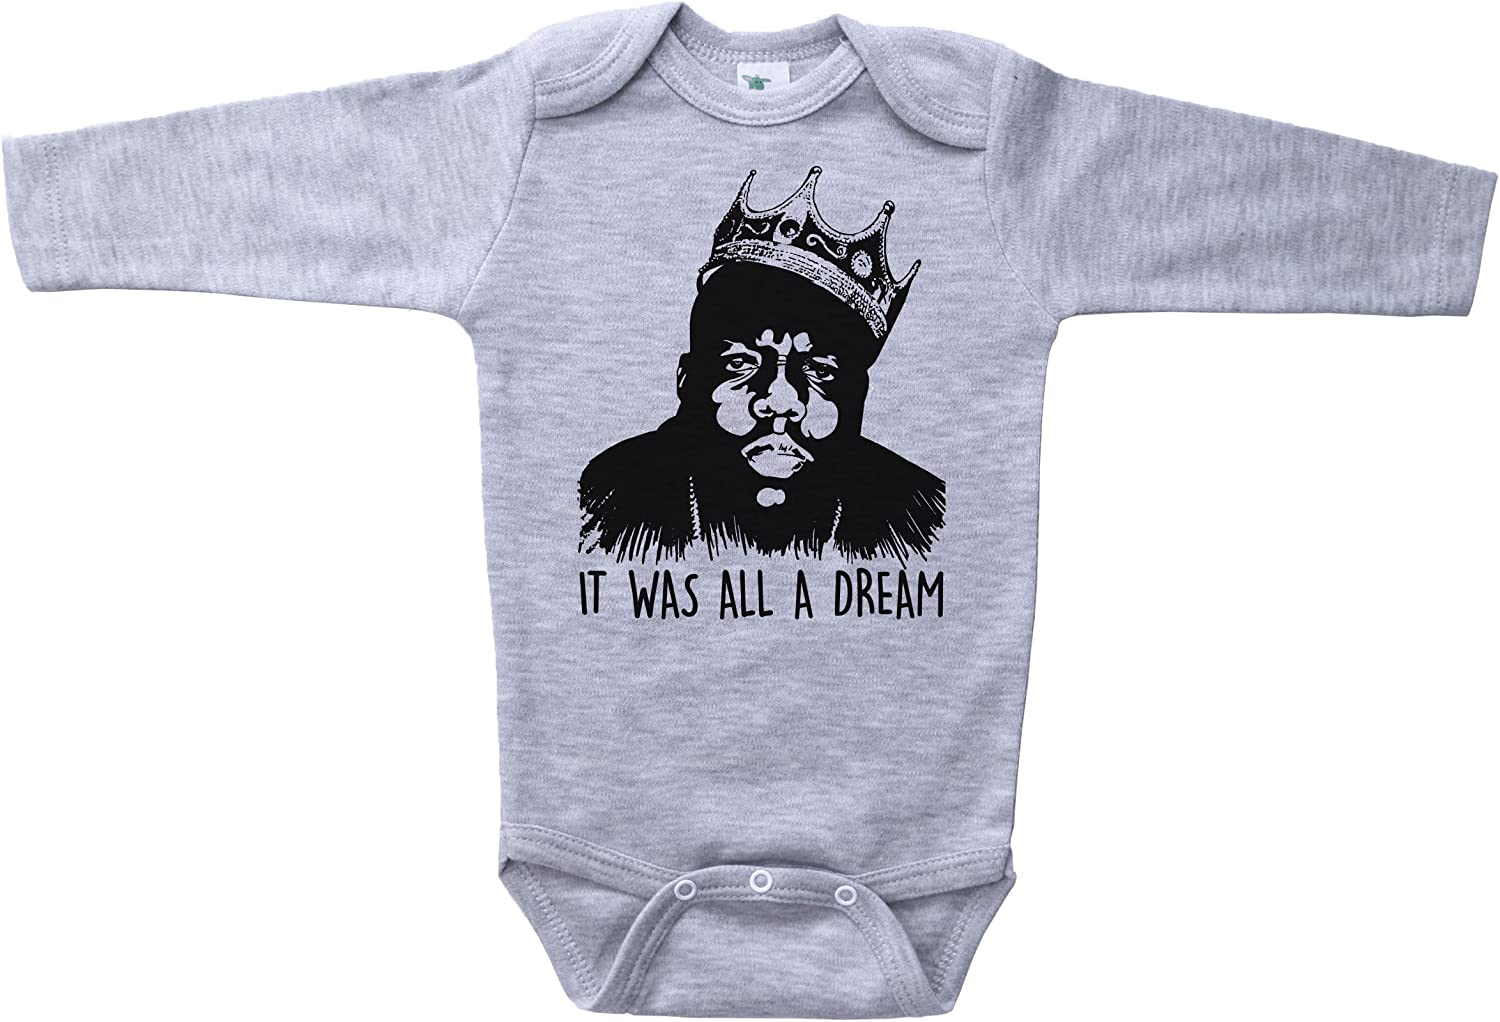 gift Biggie Ranking TOP18 Smalls Inspired Baby Onesie IT Dream was Inf A B.I.G. All